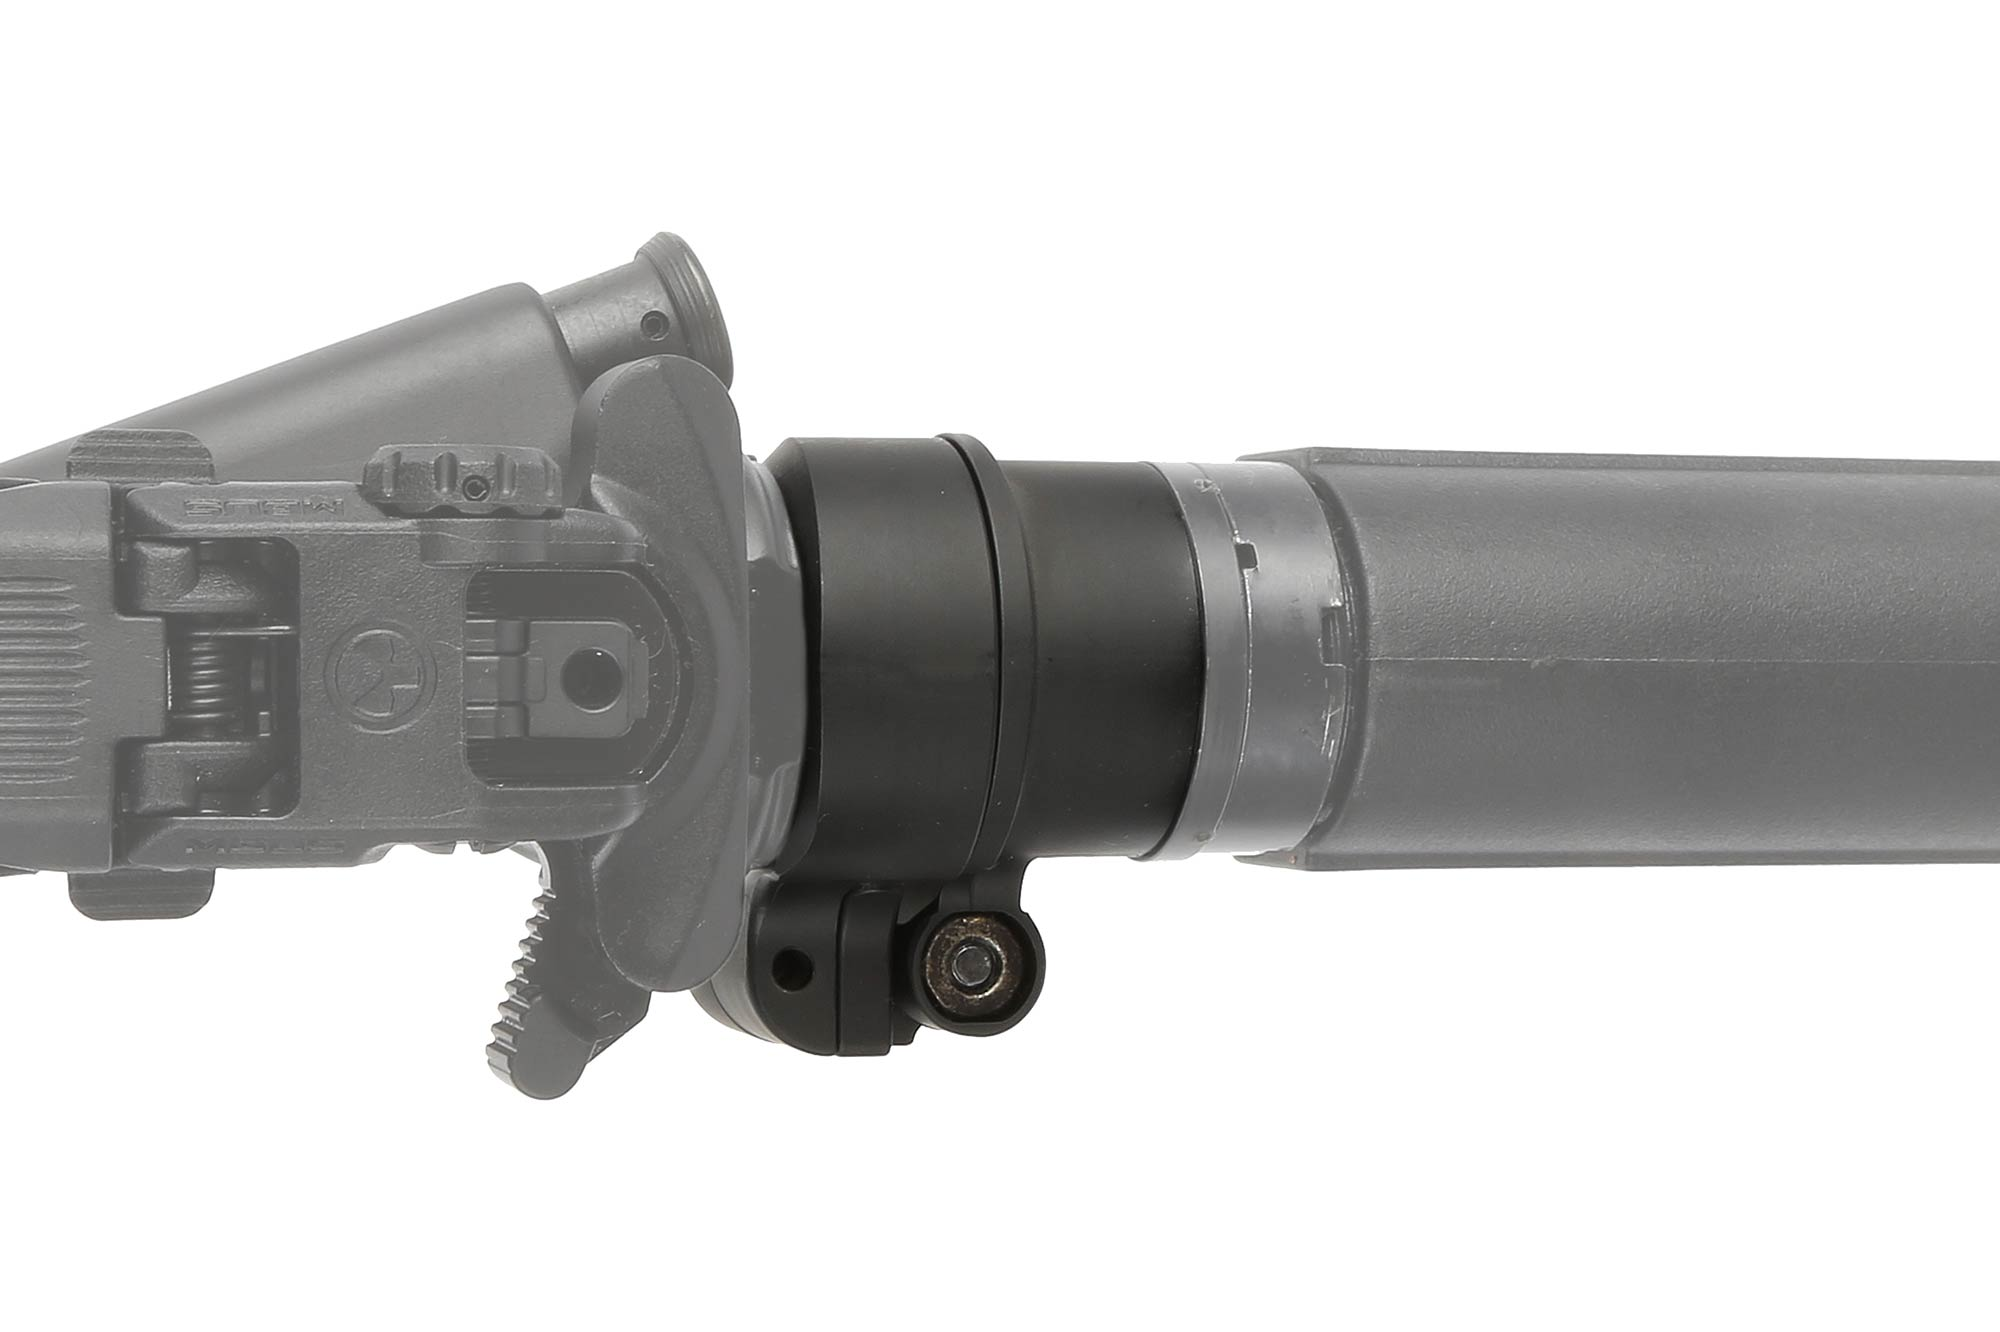 The Law Tactical AR Folding Stock Adapter Gen 3-M for ar-15 and ar308 has a quick detach sling attachment point